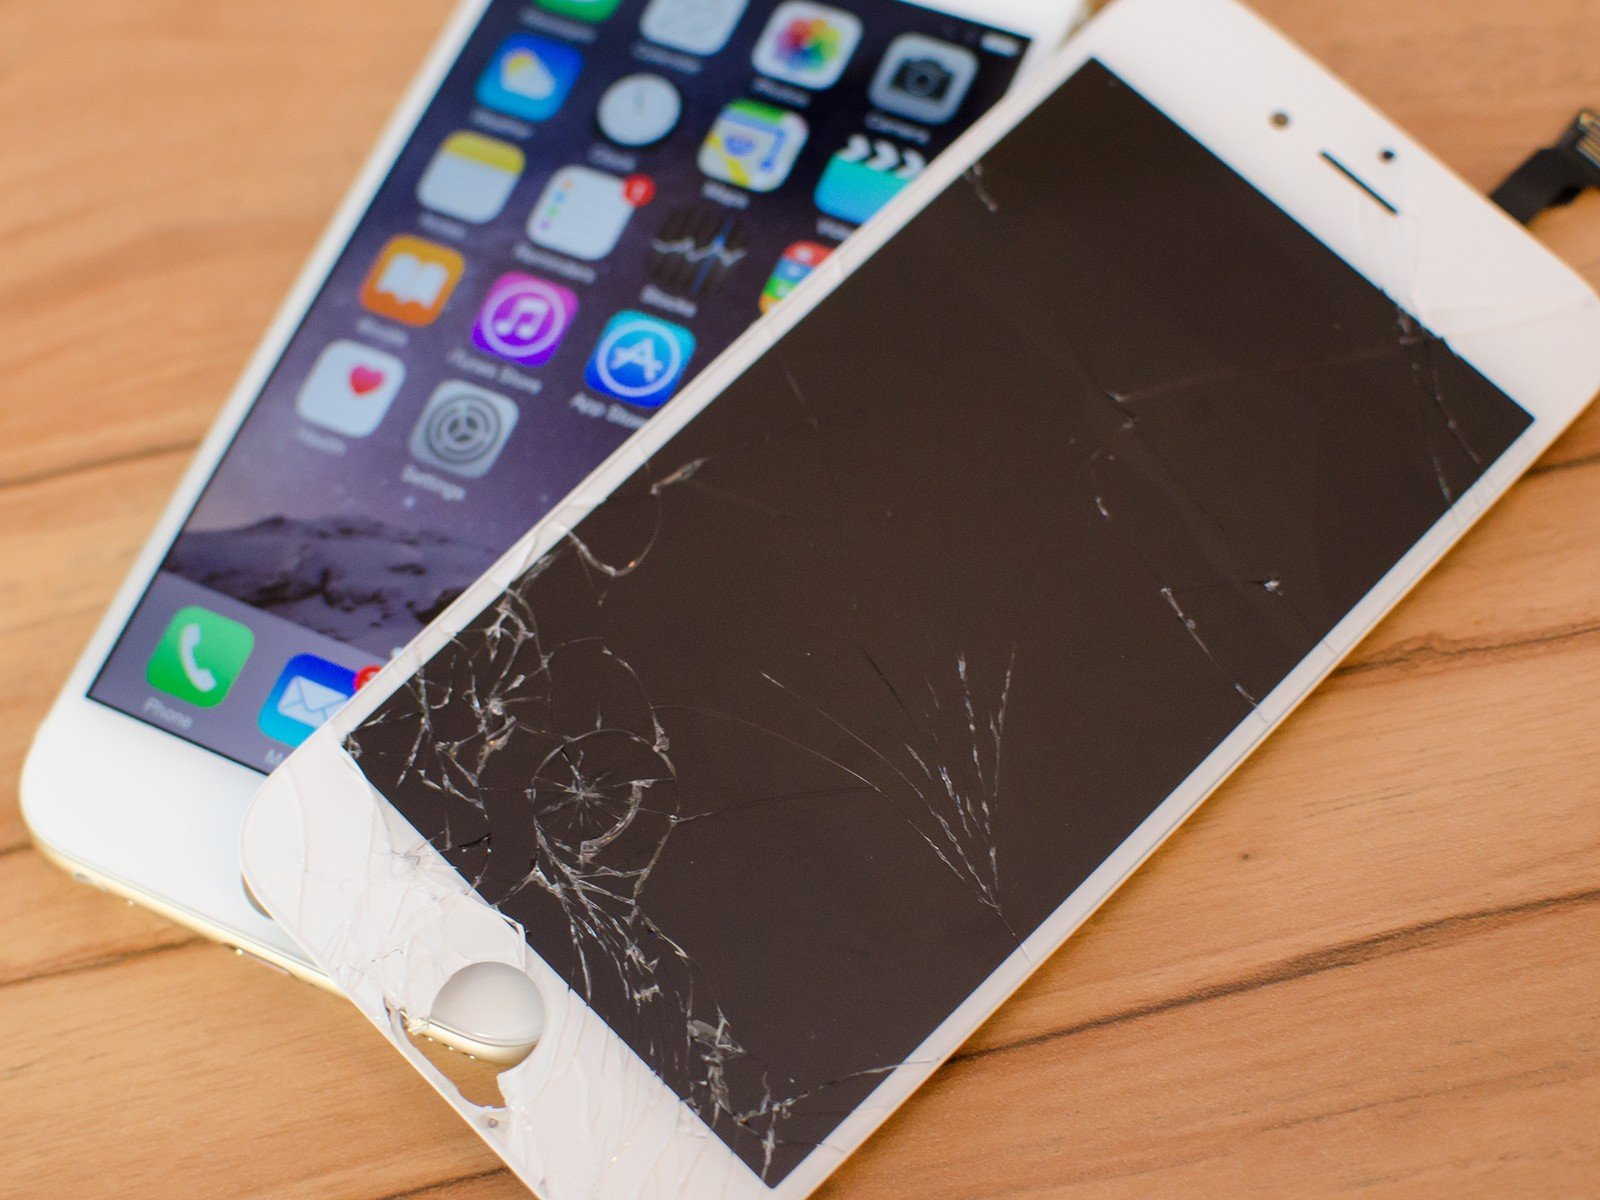 official photos cdcb1 79664 Top 5 Things to Check before you get your iPhone Screen Repaired ...